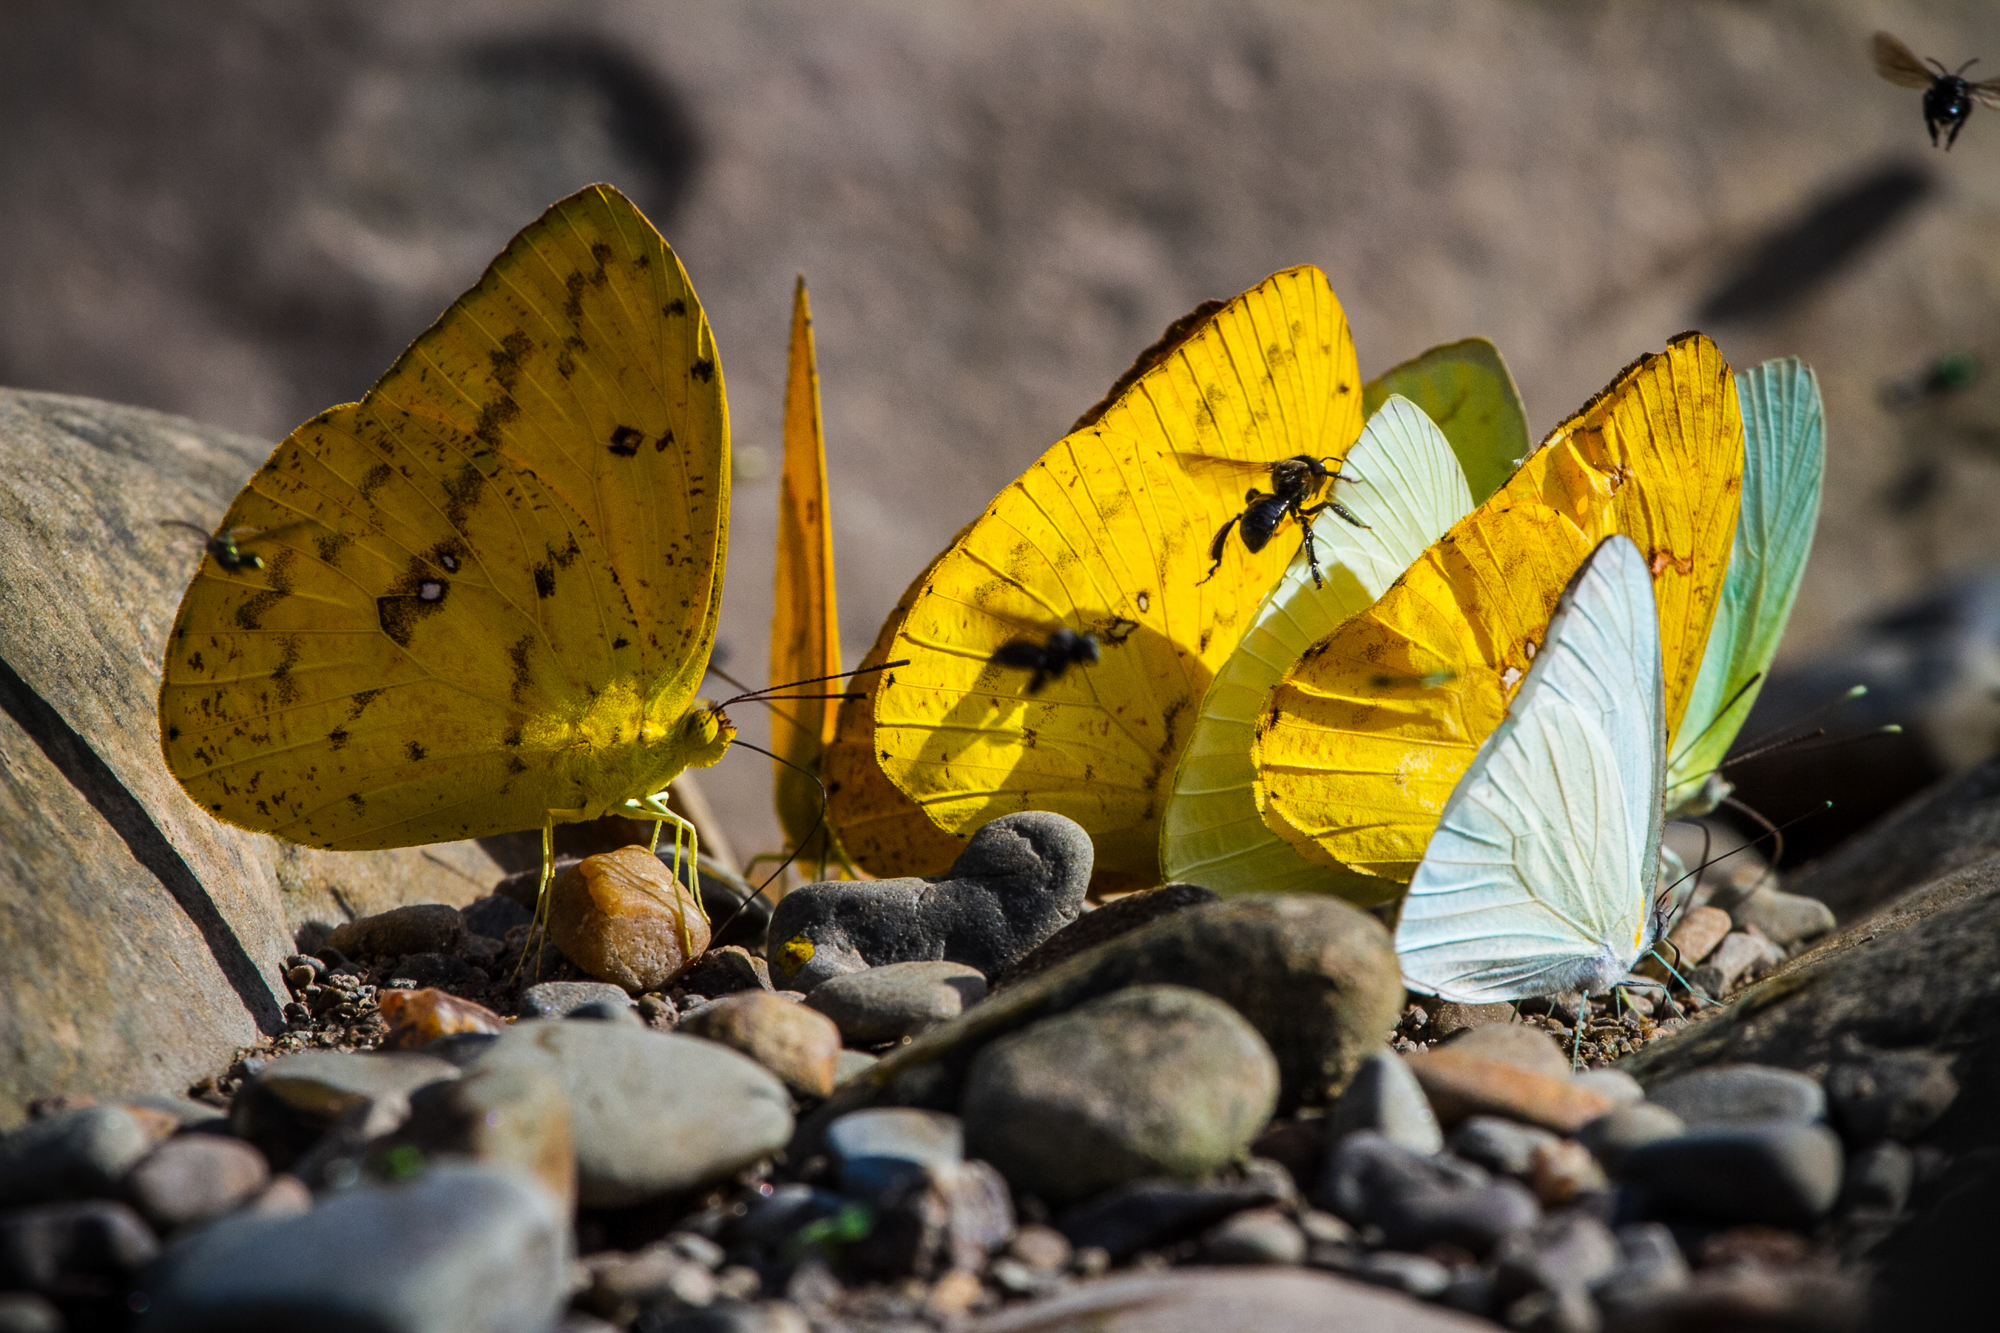 A group of colorful butterflies and wasps collecting salt from bird dung.